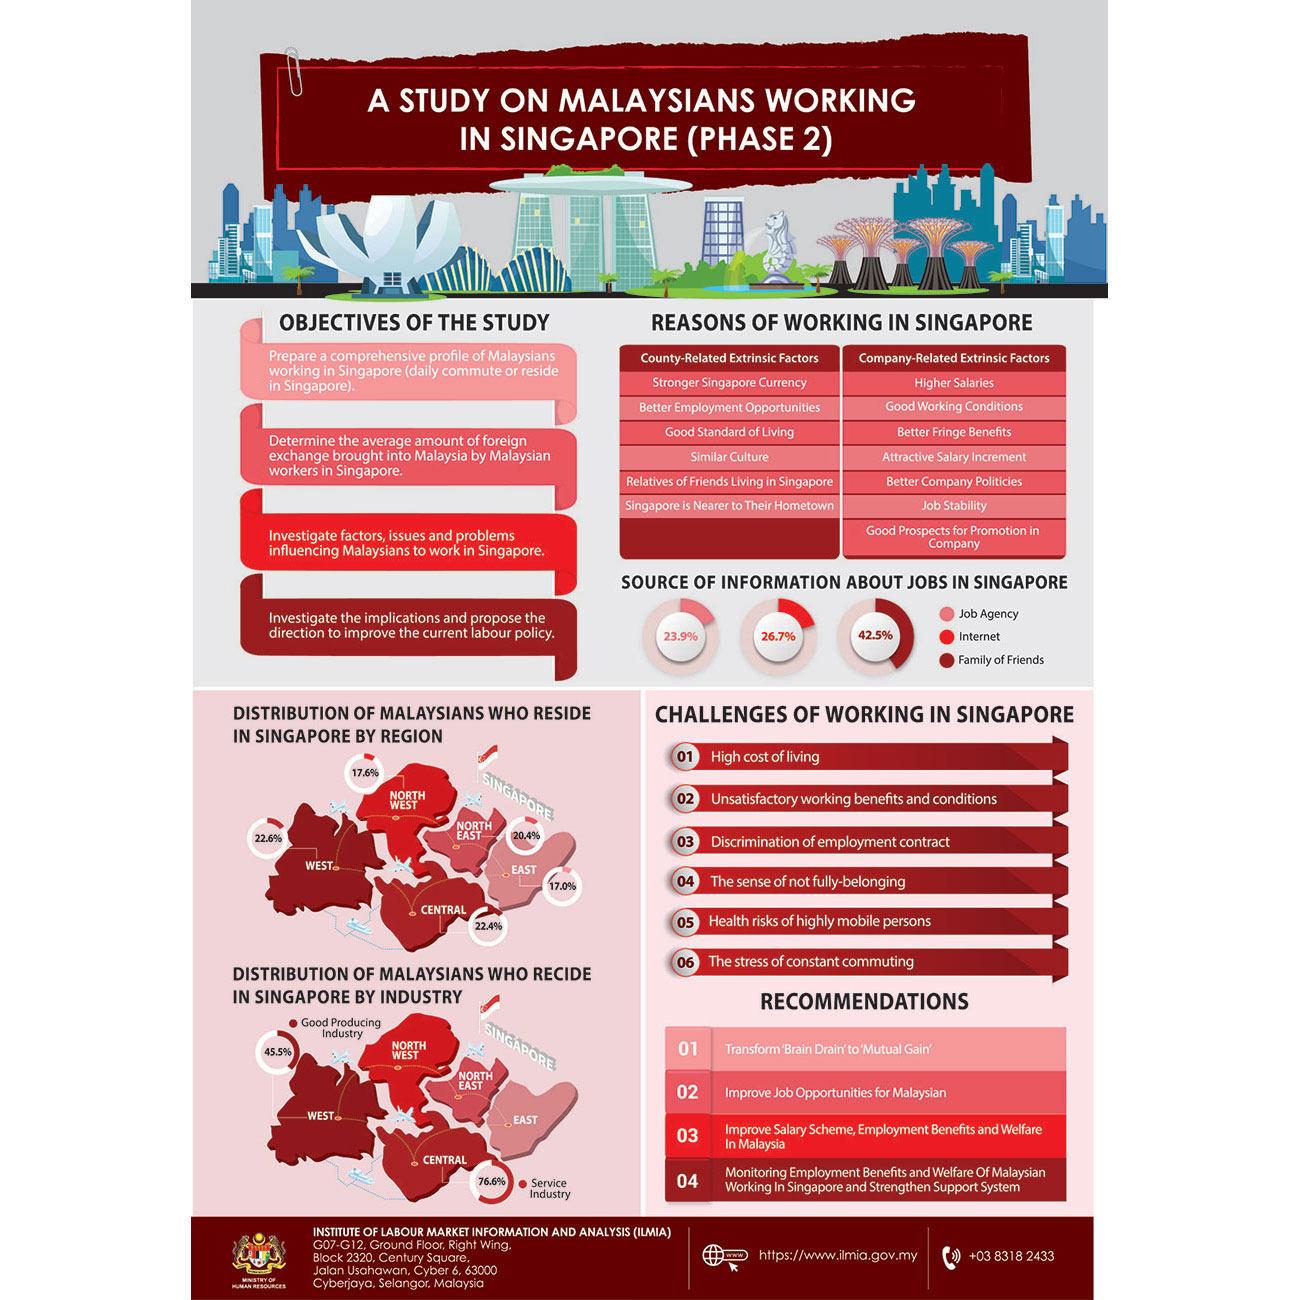 A Study On Malaysians Working In Singapore Phase 2